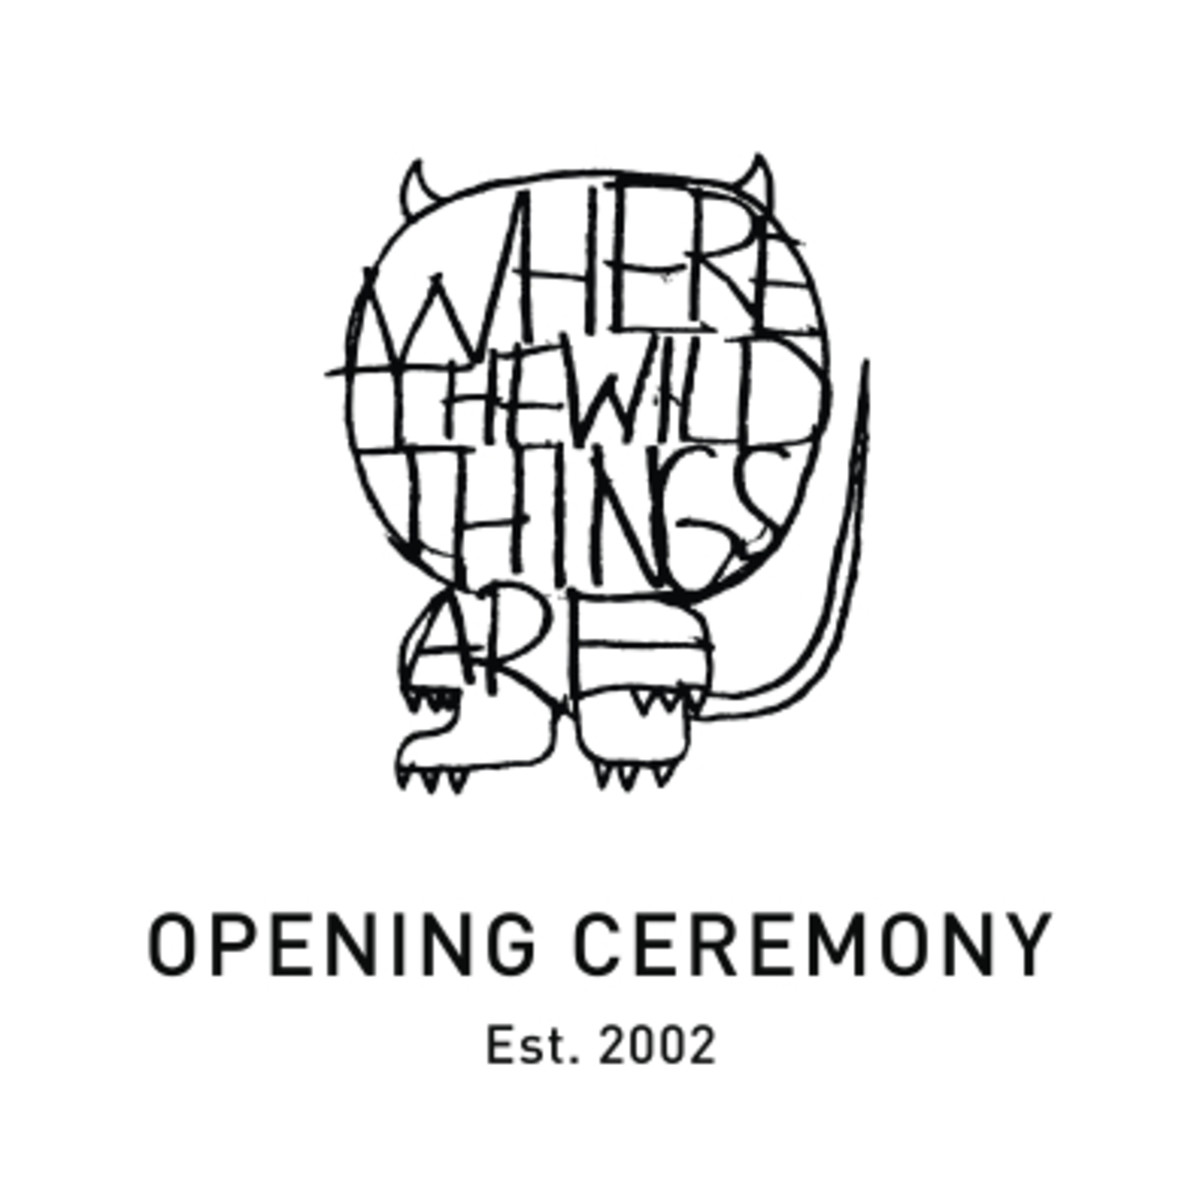 opening-ceremony-where-the-wild-things-are-02